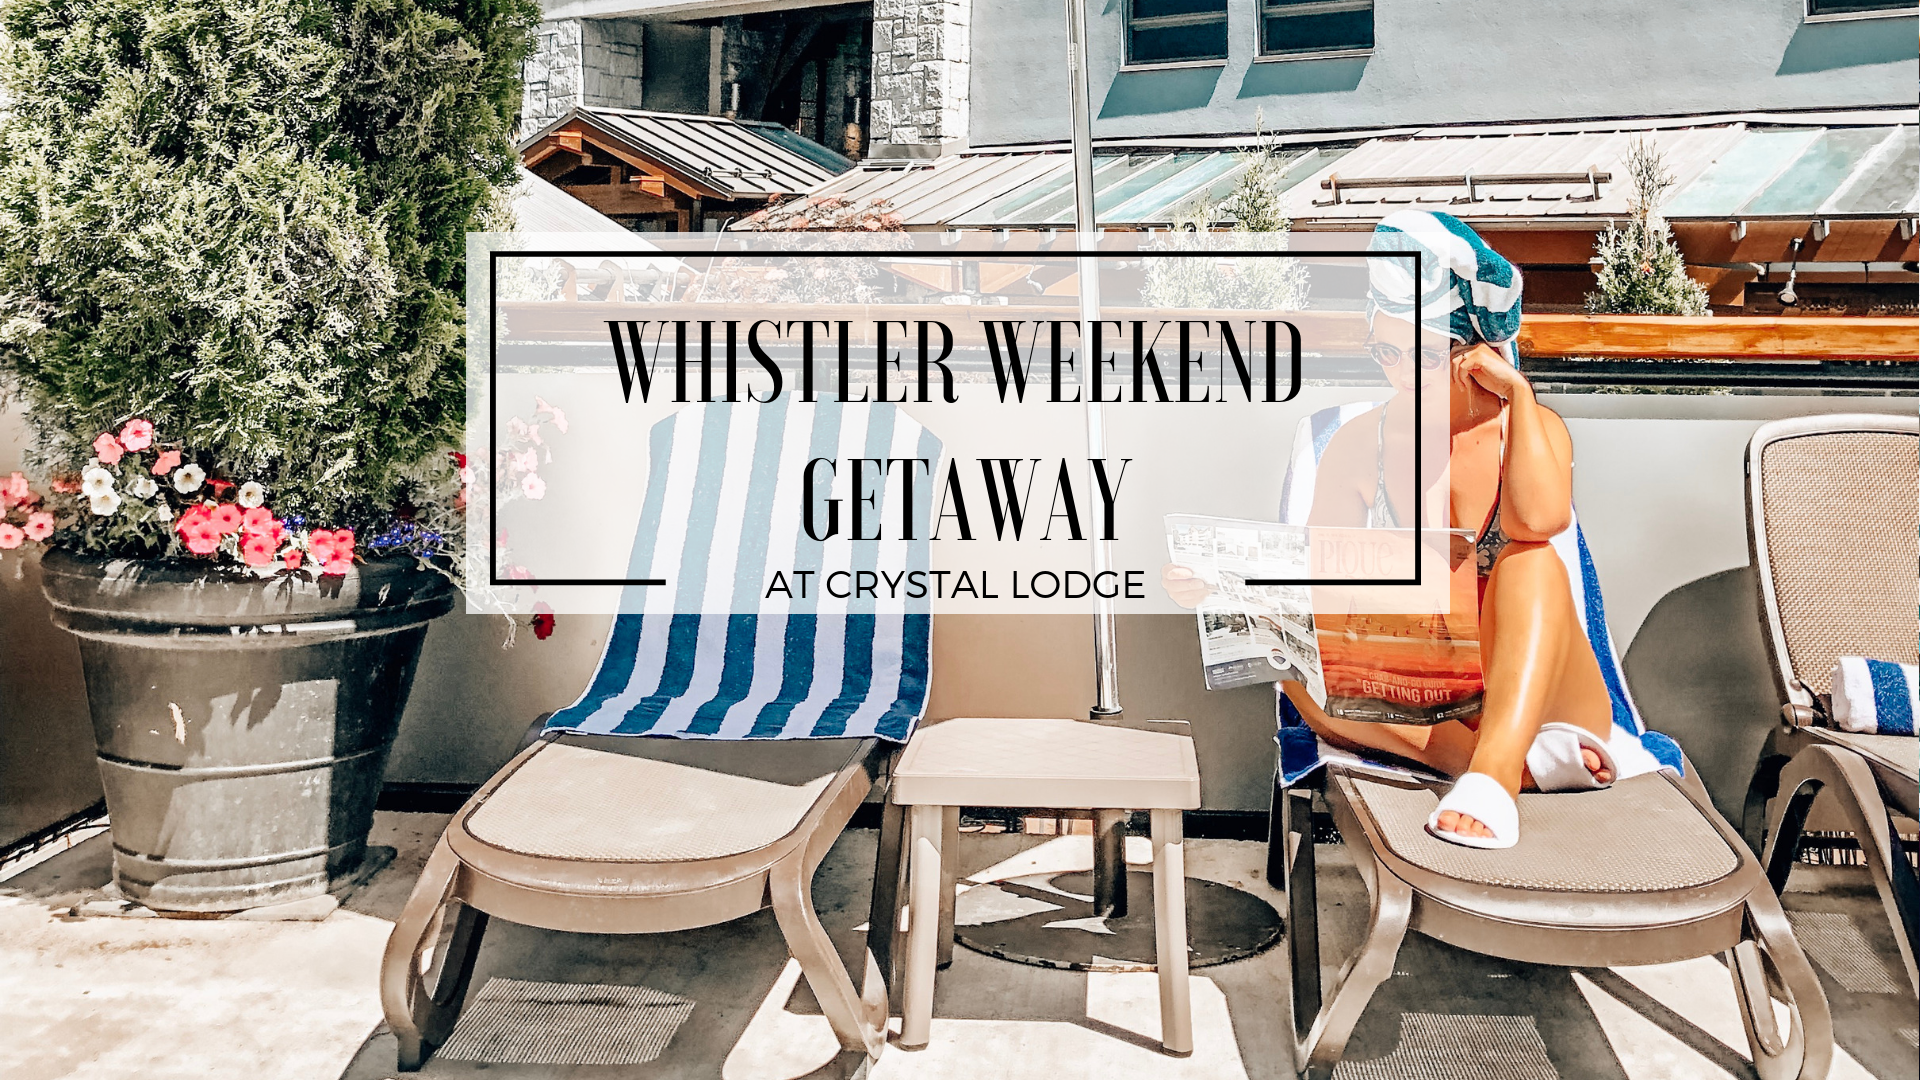 WHISTLER WEEKEND GETAWAY